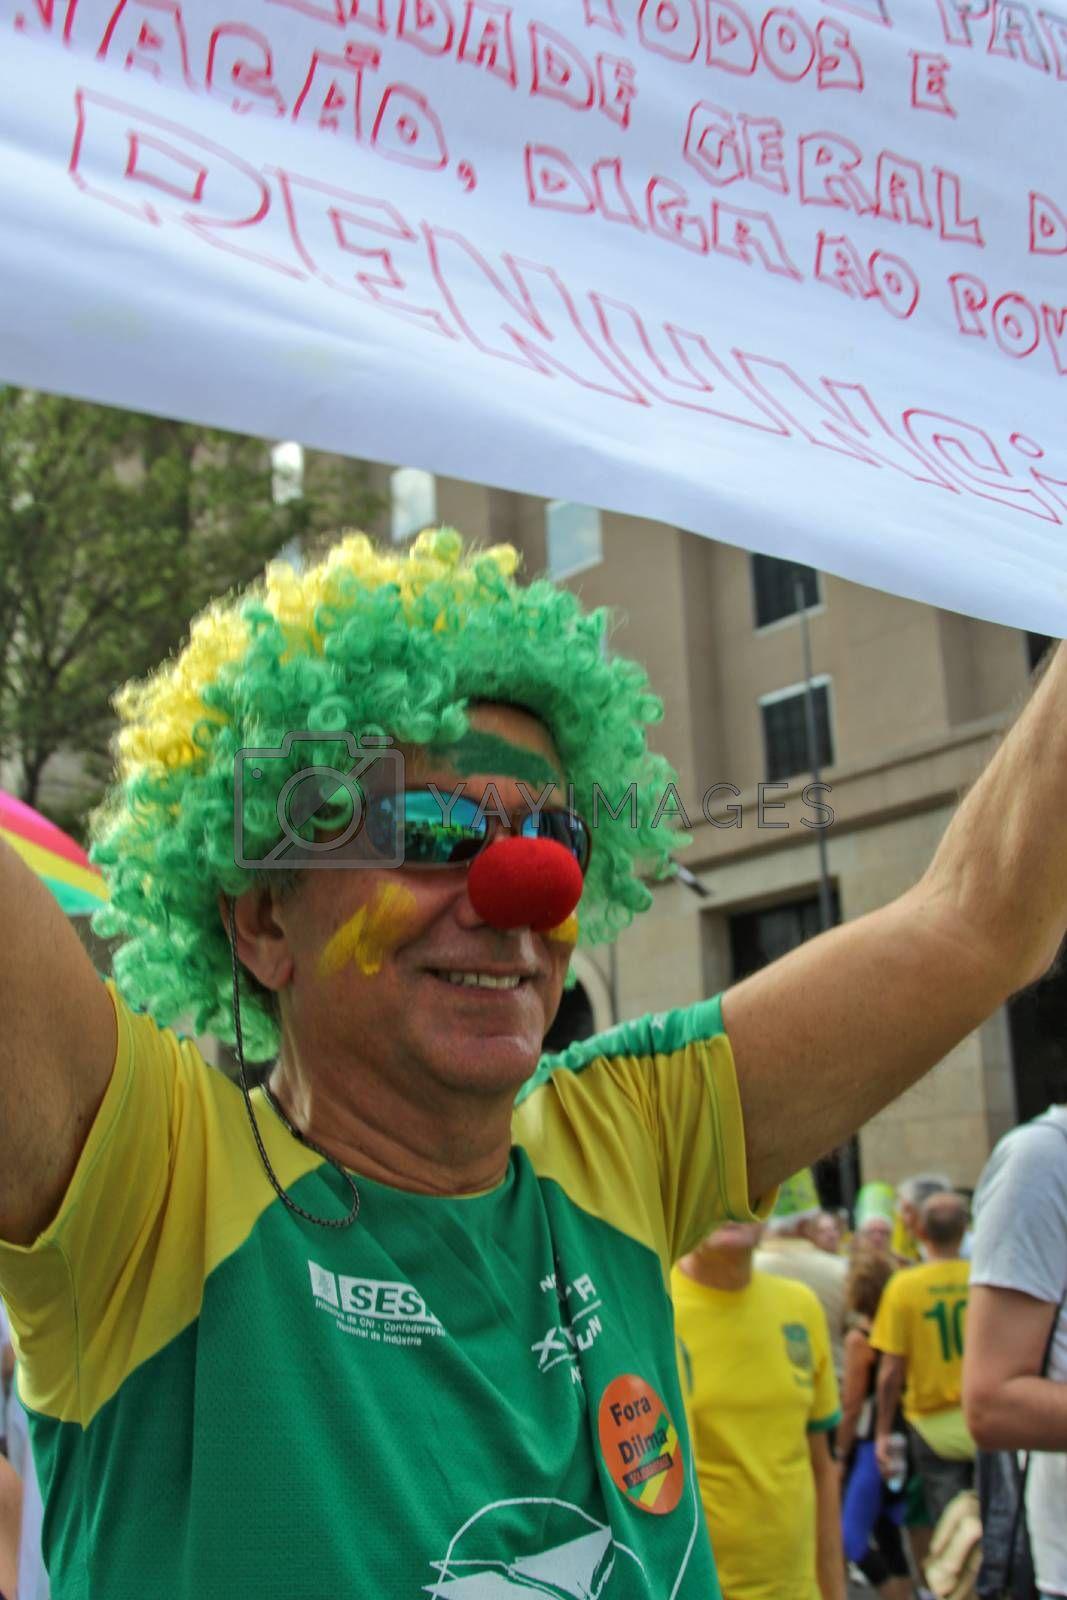 Protest against federal government corruption in Brazil by marphotography